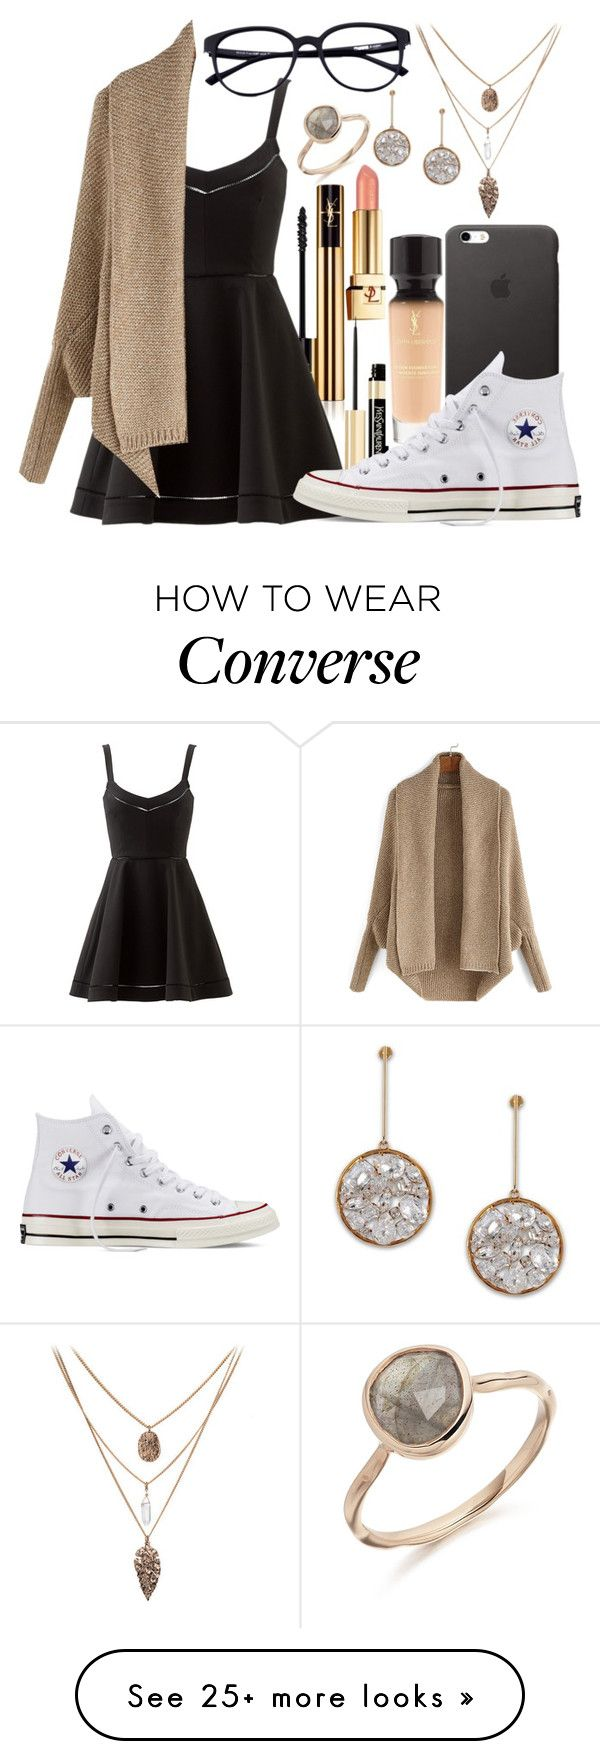 """She Knows..."" by mallorimae on Polyvore featuring Yves Saint Laurent, Elizabeth and James, Converse and STELLA McCARTNEY"